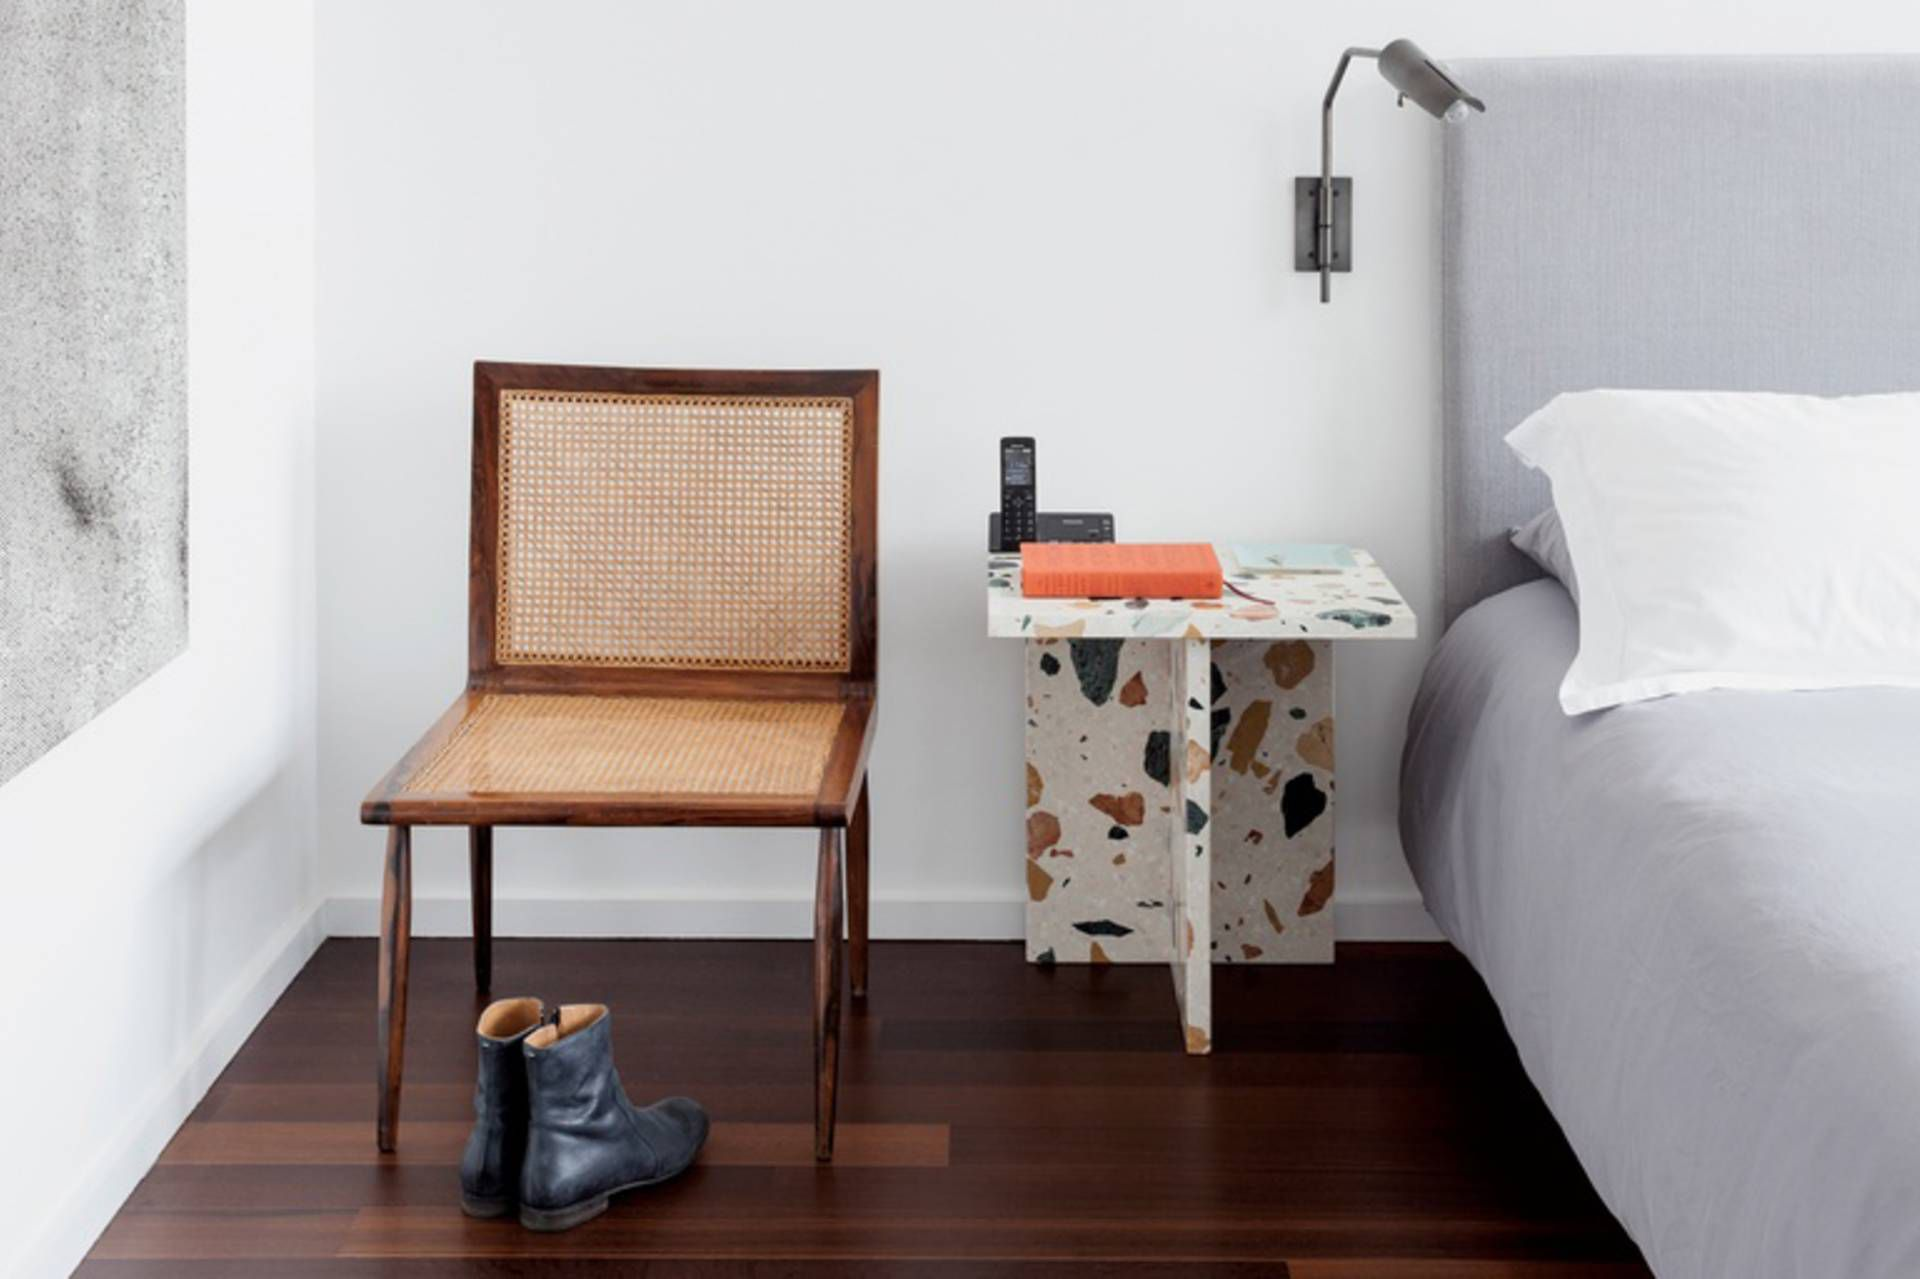 Terrazzo side table next to bed.